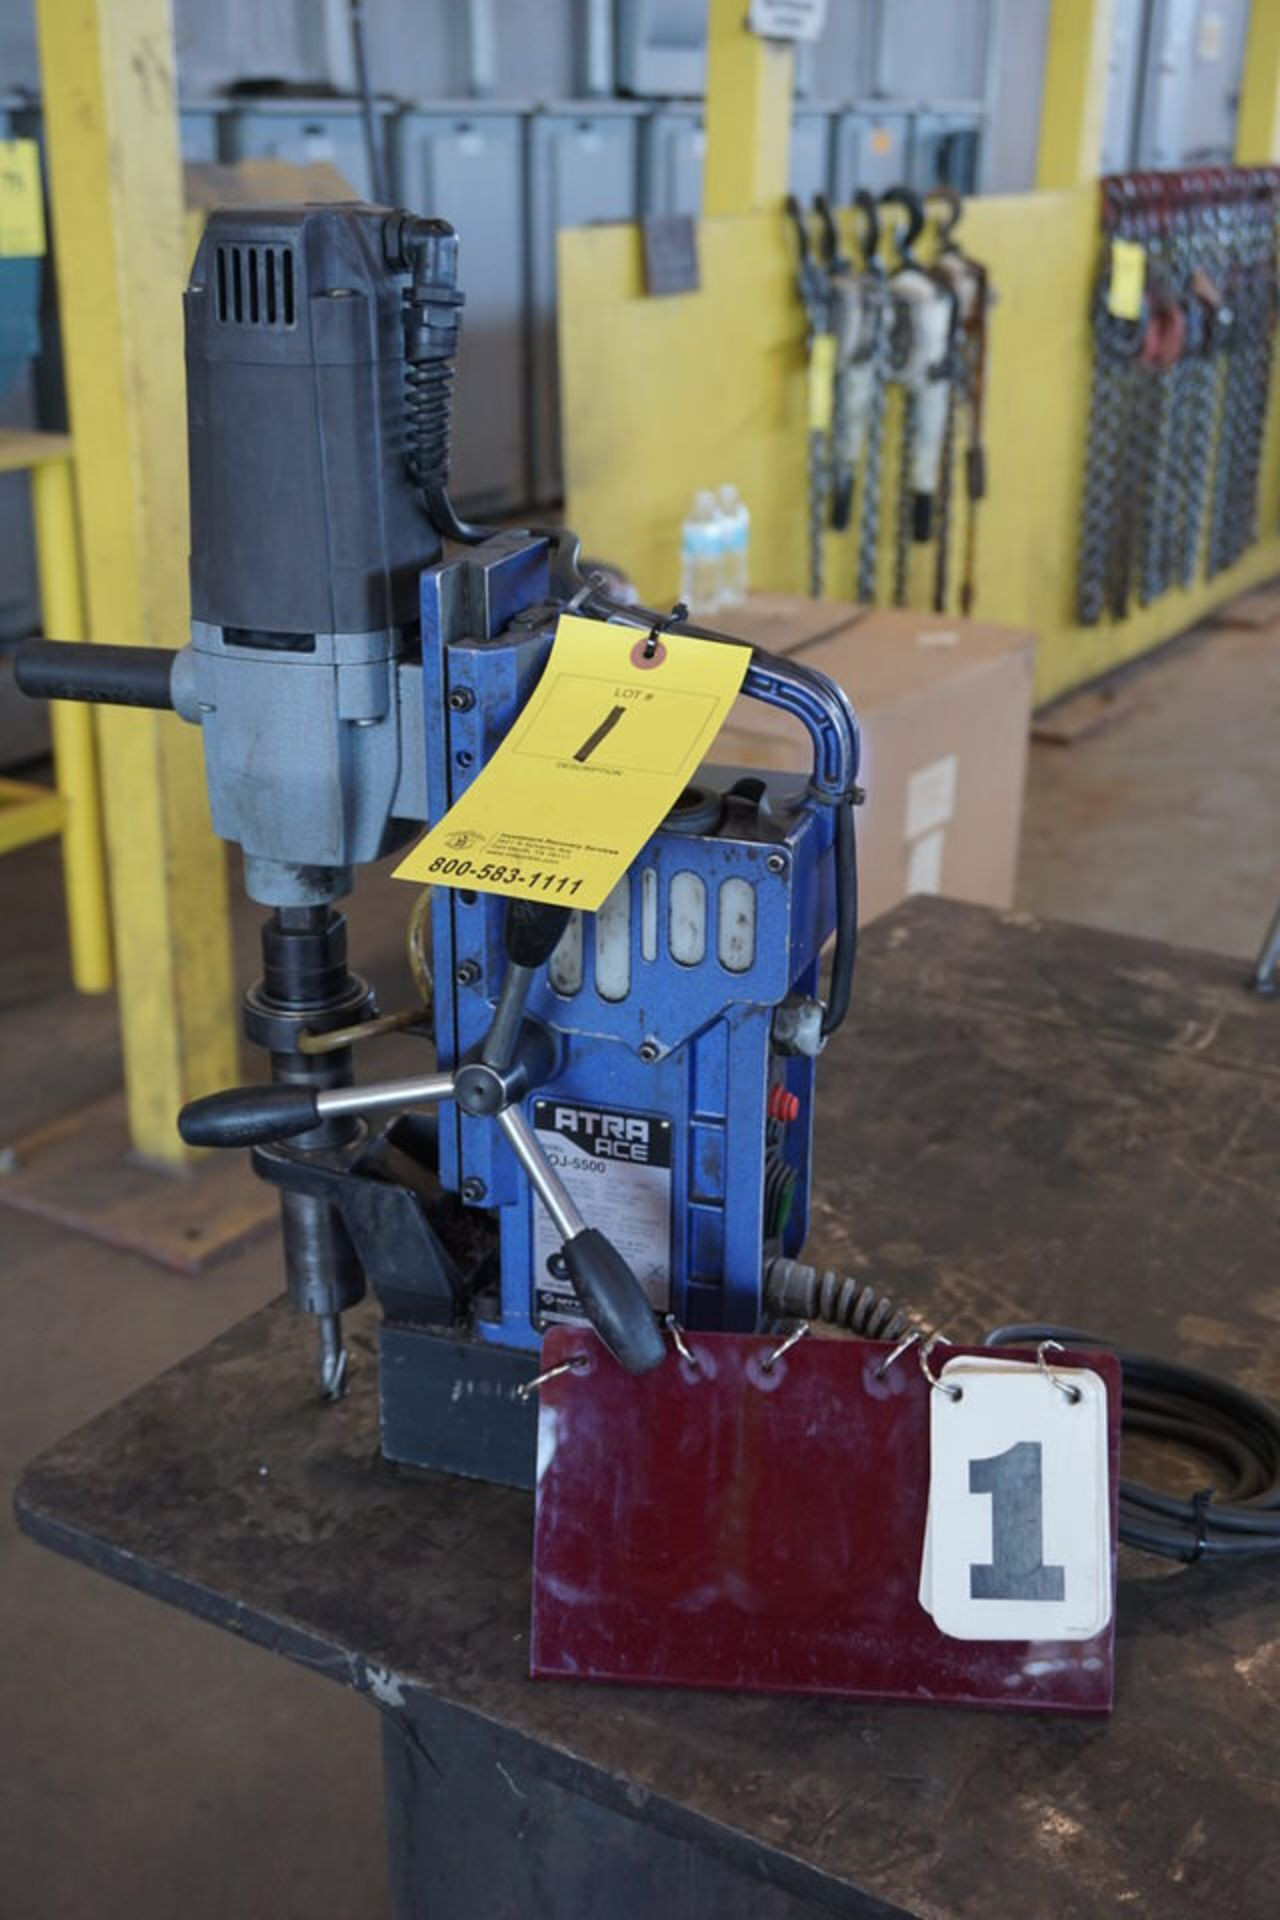 Lot 1 - ATRA ACE MAGNETIC DRILL, MDL: VOJ-5500